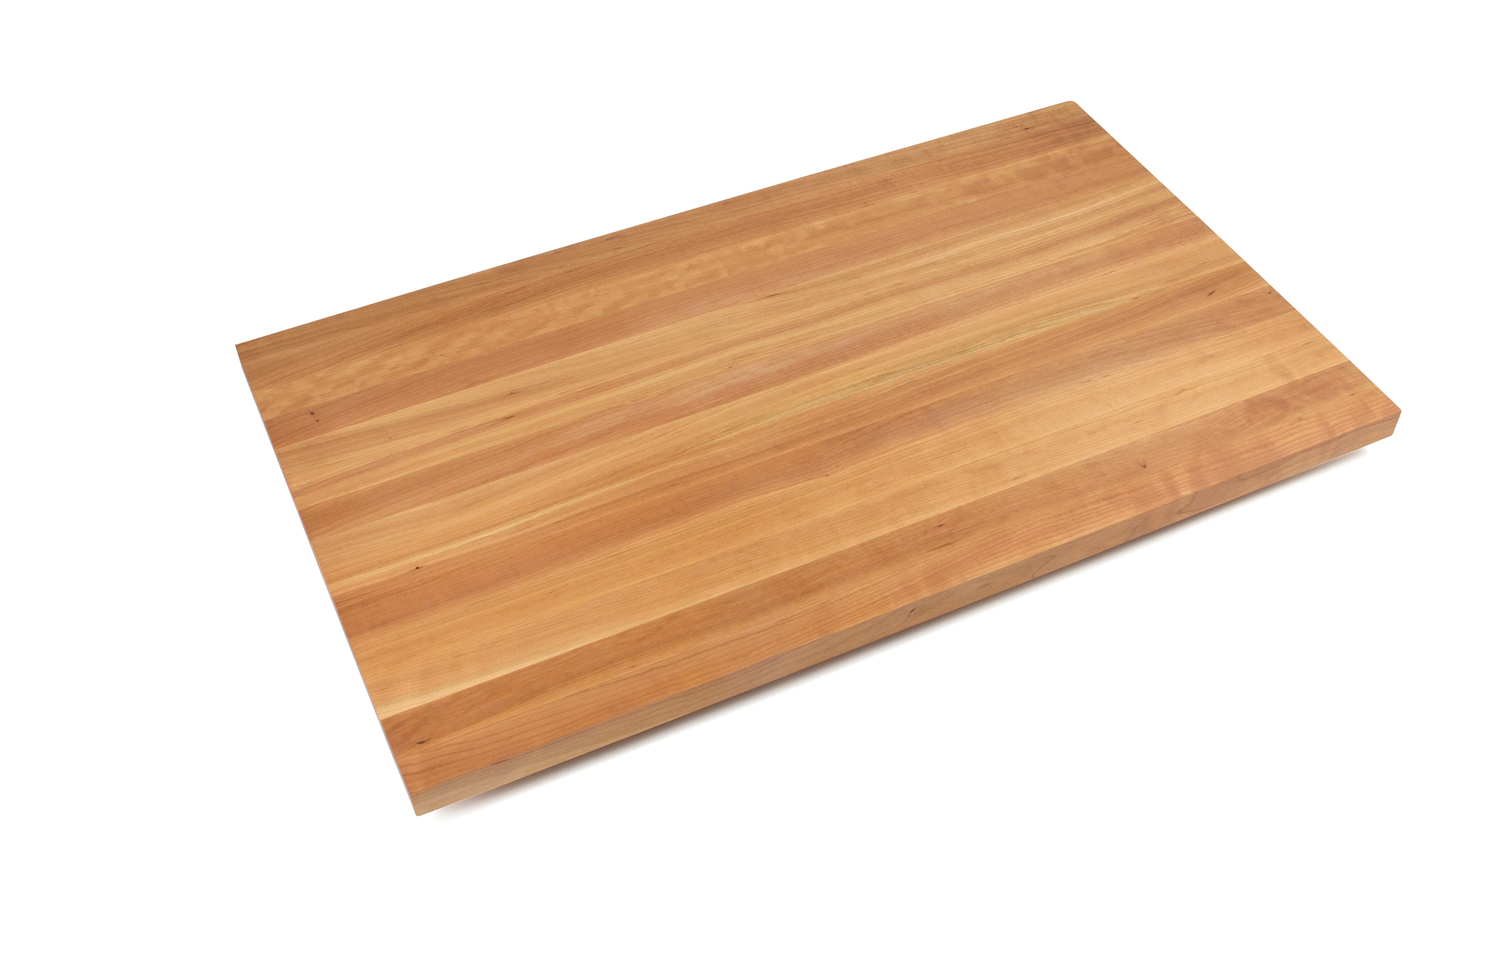 2.25 inch thick cherry edge grain Boos counters 27 inches wide